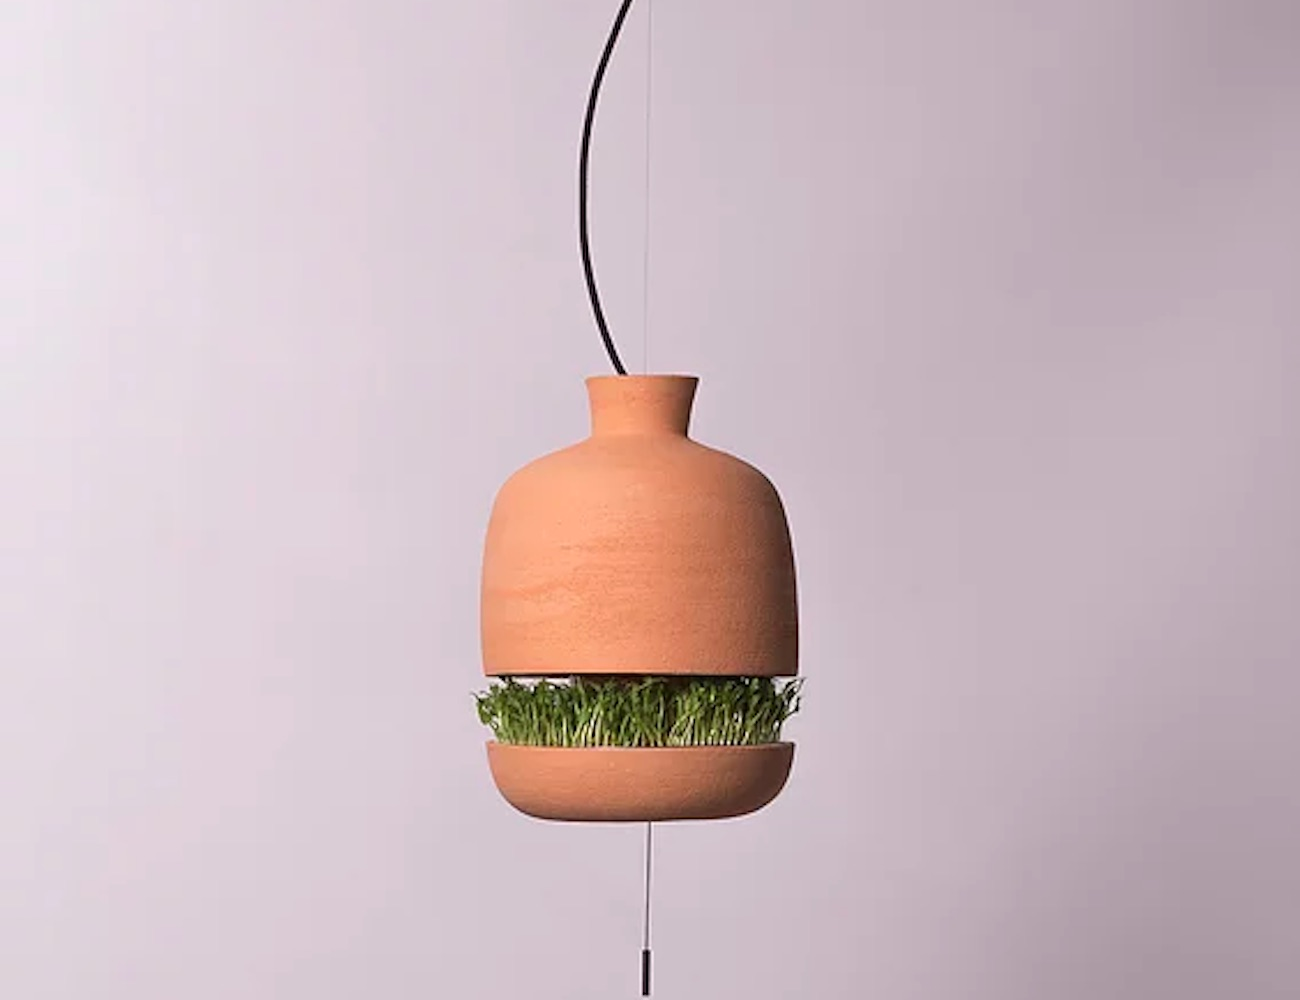 Brot Lamp Germinator Duo grows edible sprouts from a light